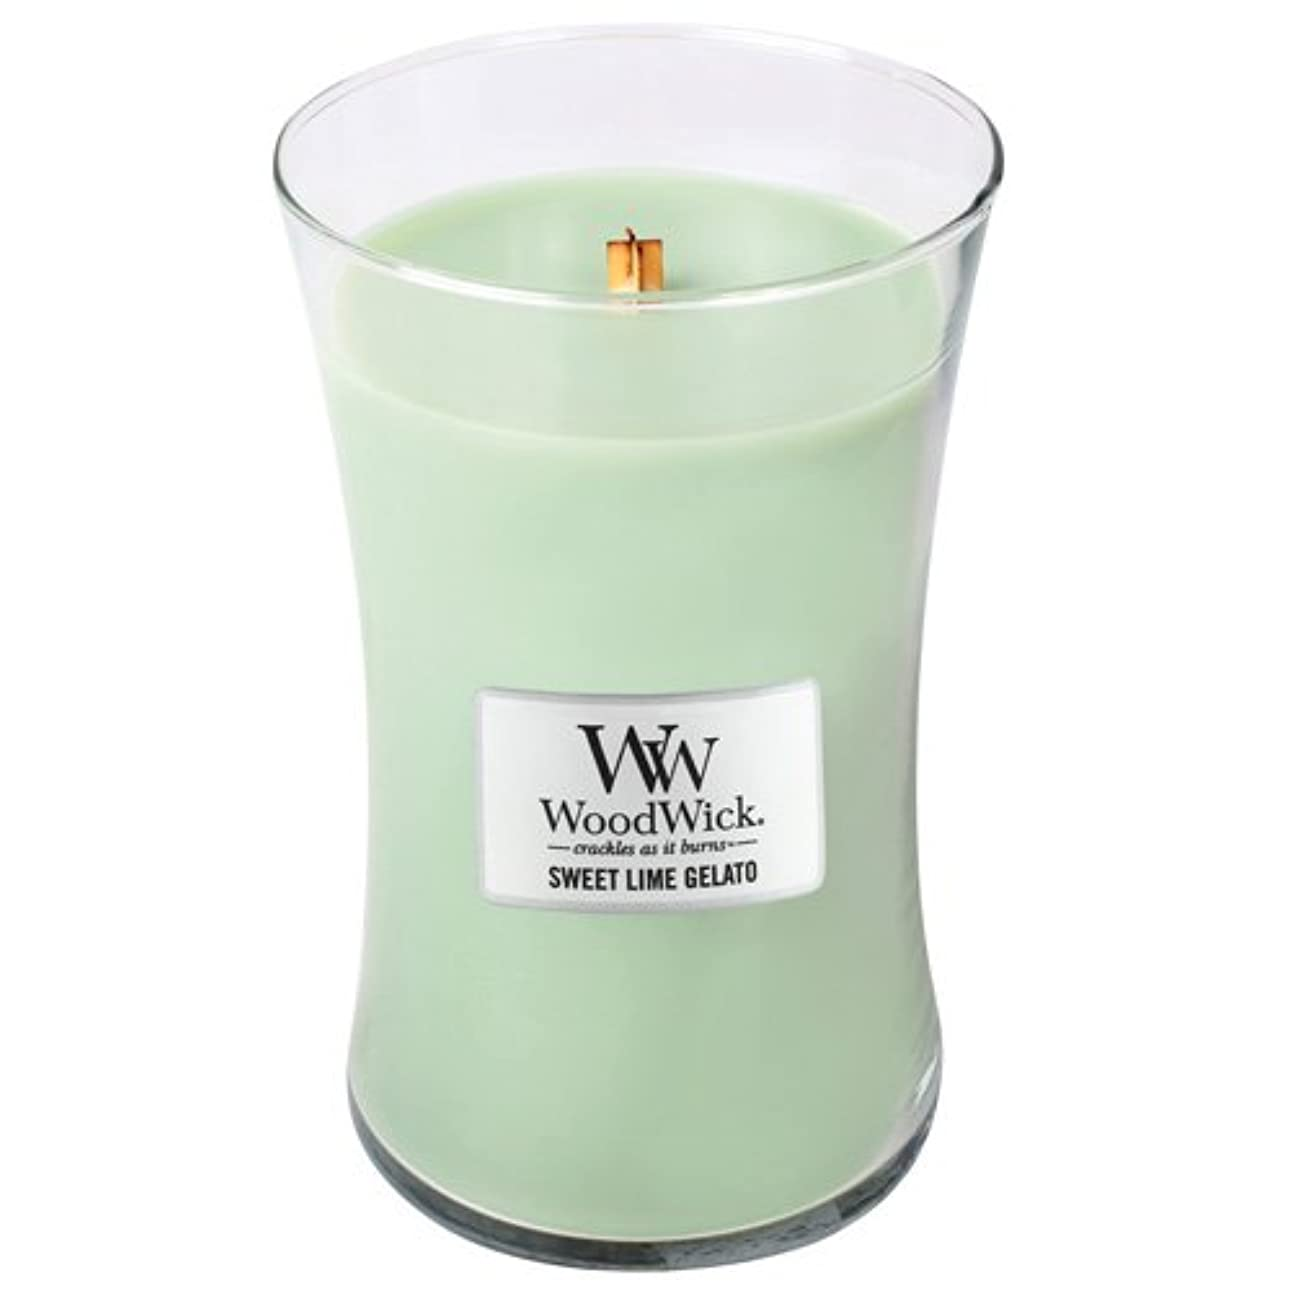 WoodWick Sweet Lime Gelato Large Jar Scented Candle